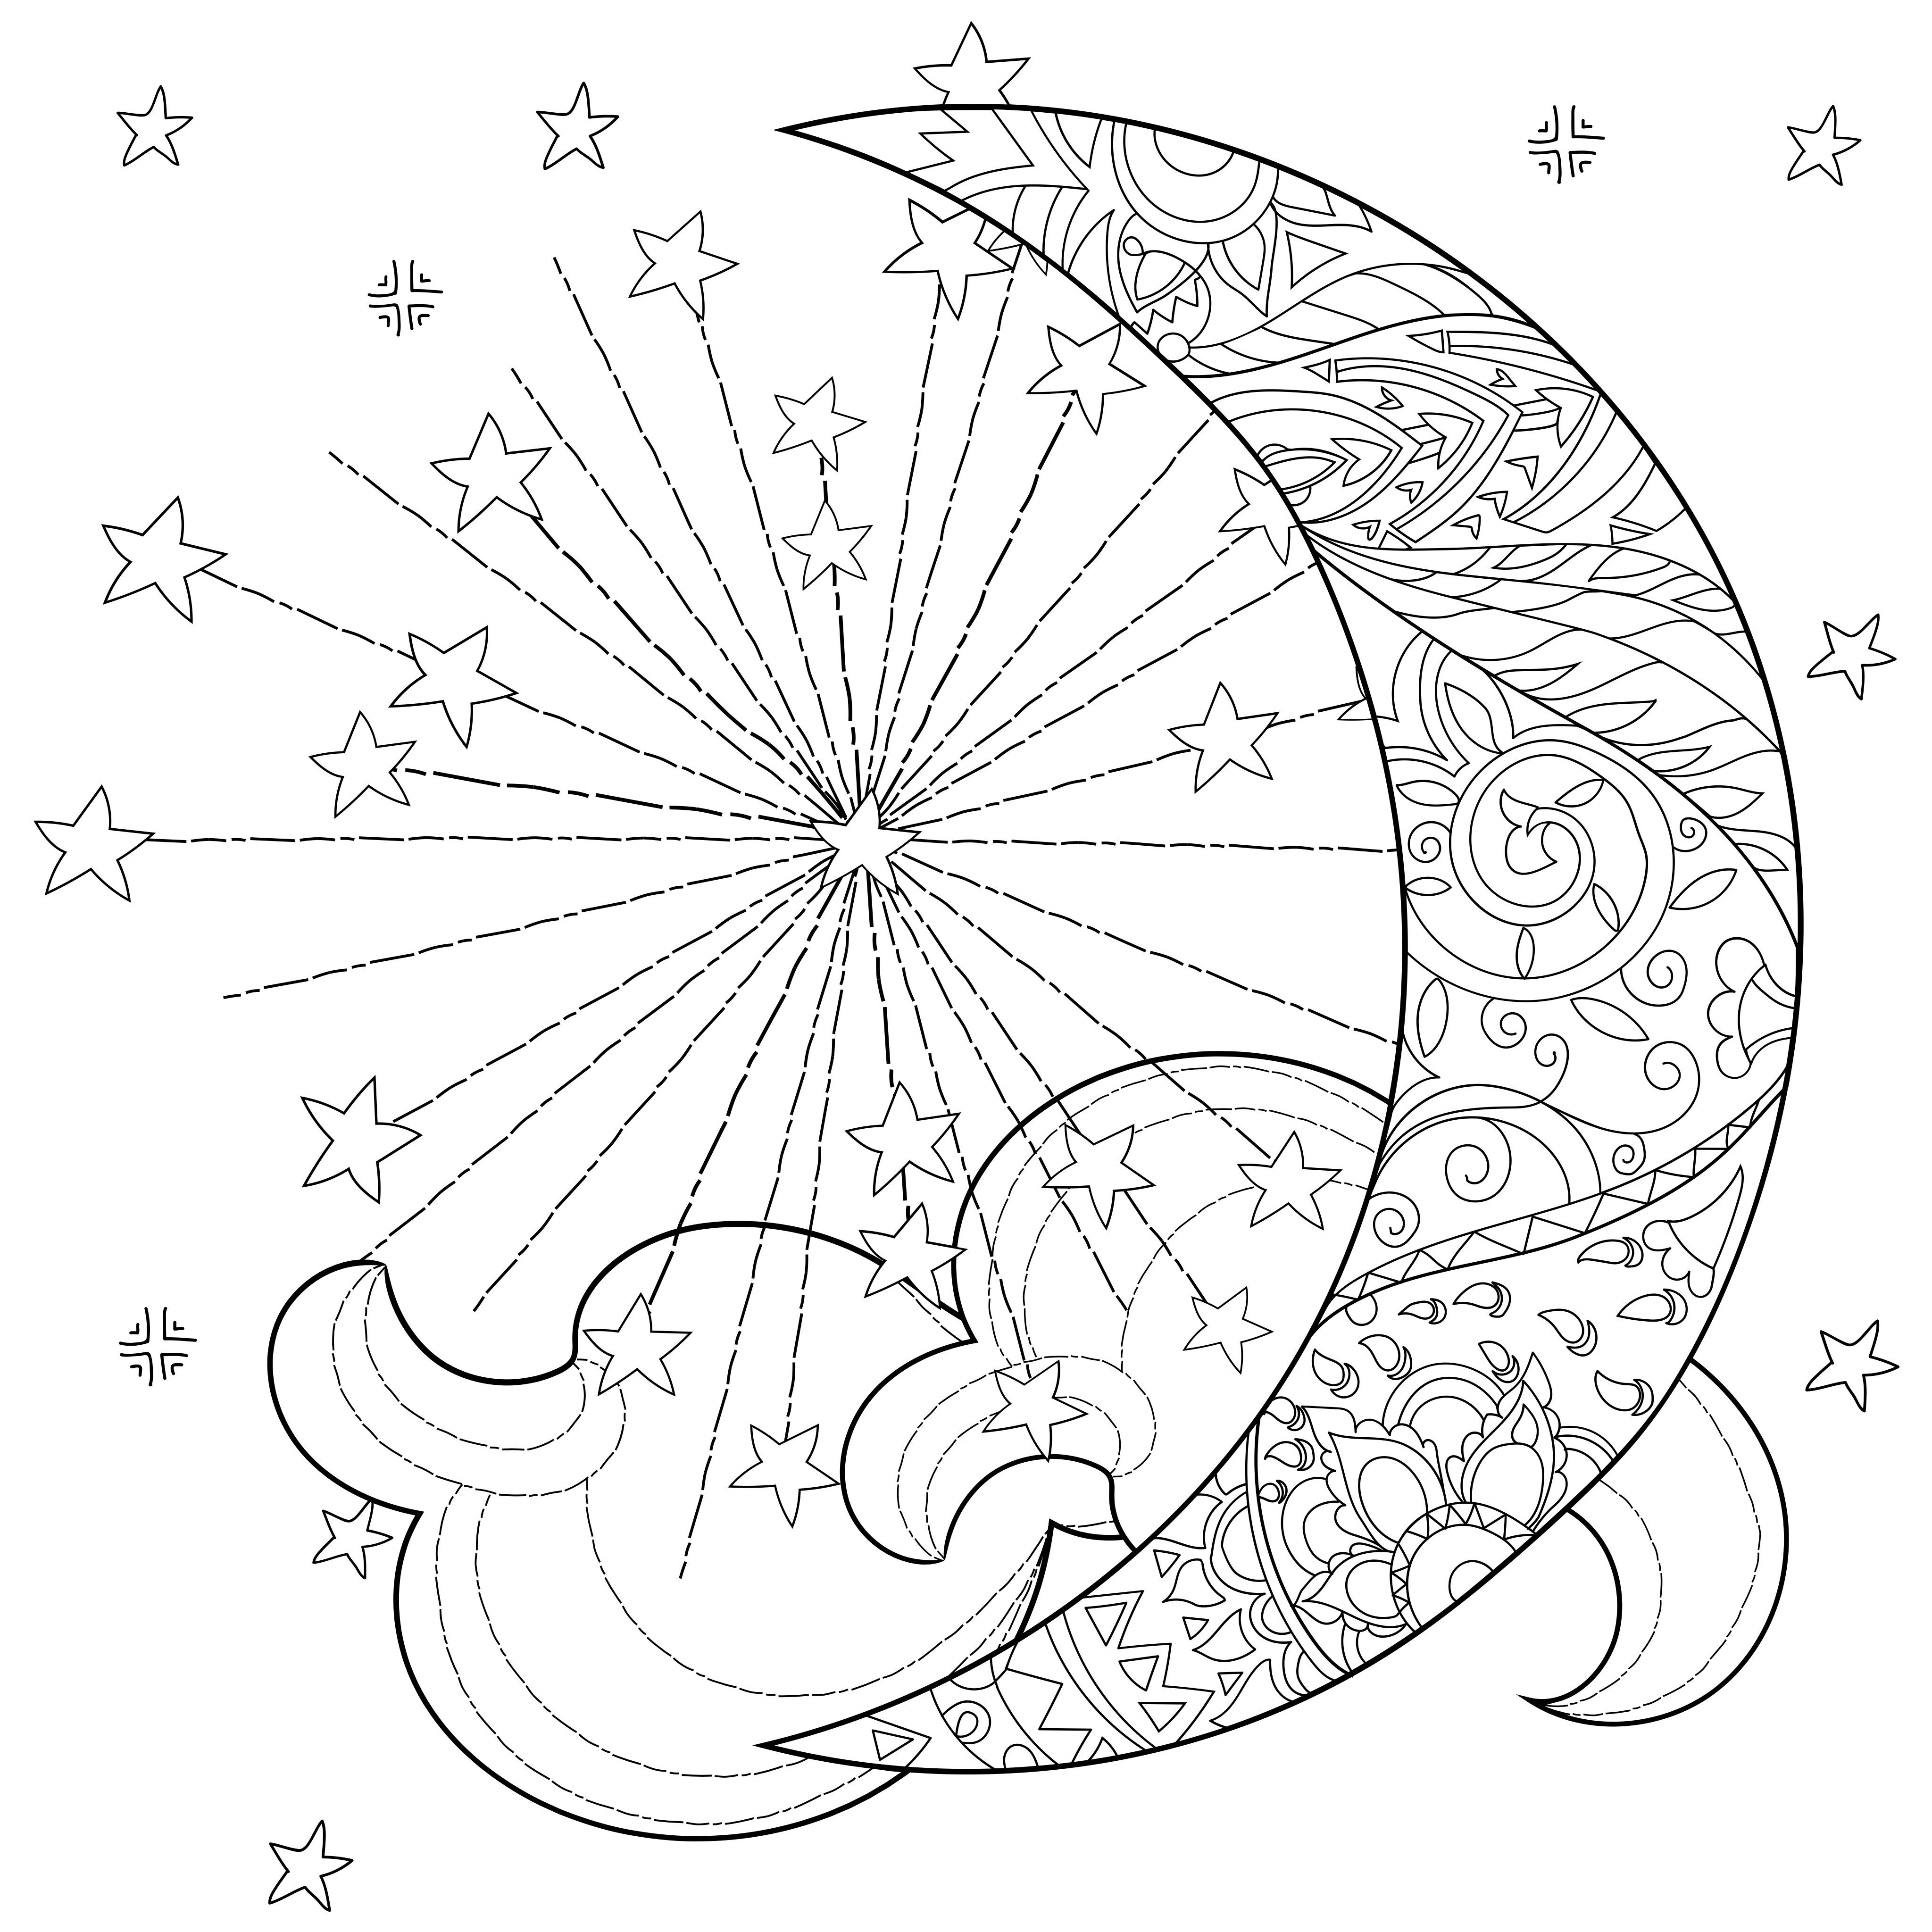 coloring pages sun and moon moon and stars coloring pages at getdrawings free download and moon sun coloring pages